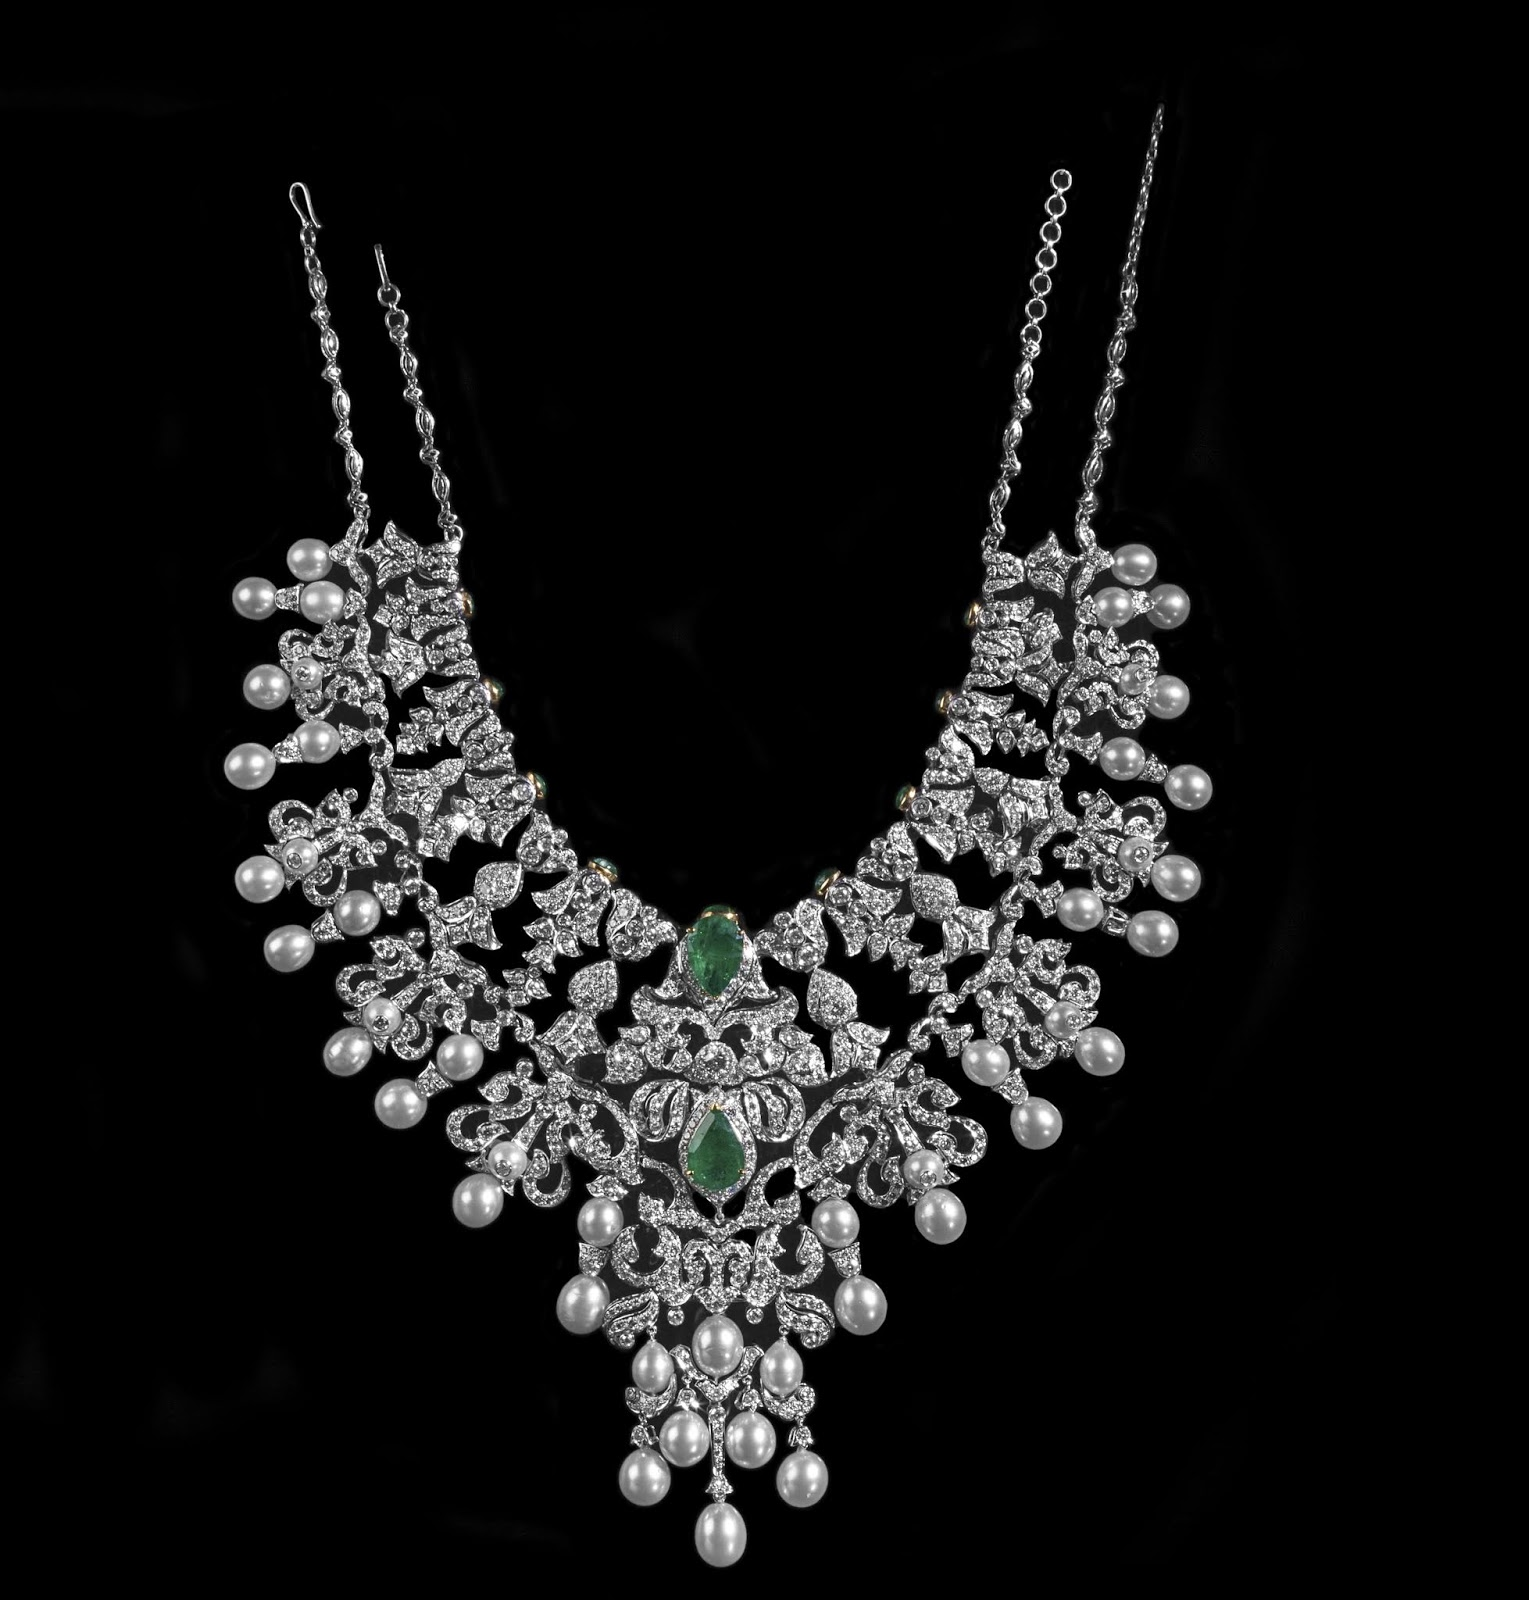 Diamond Necklace from Bridal Collection